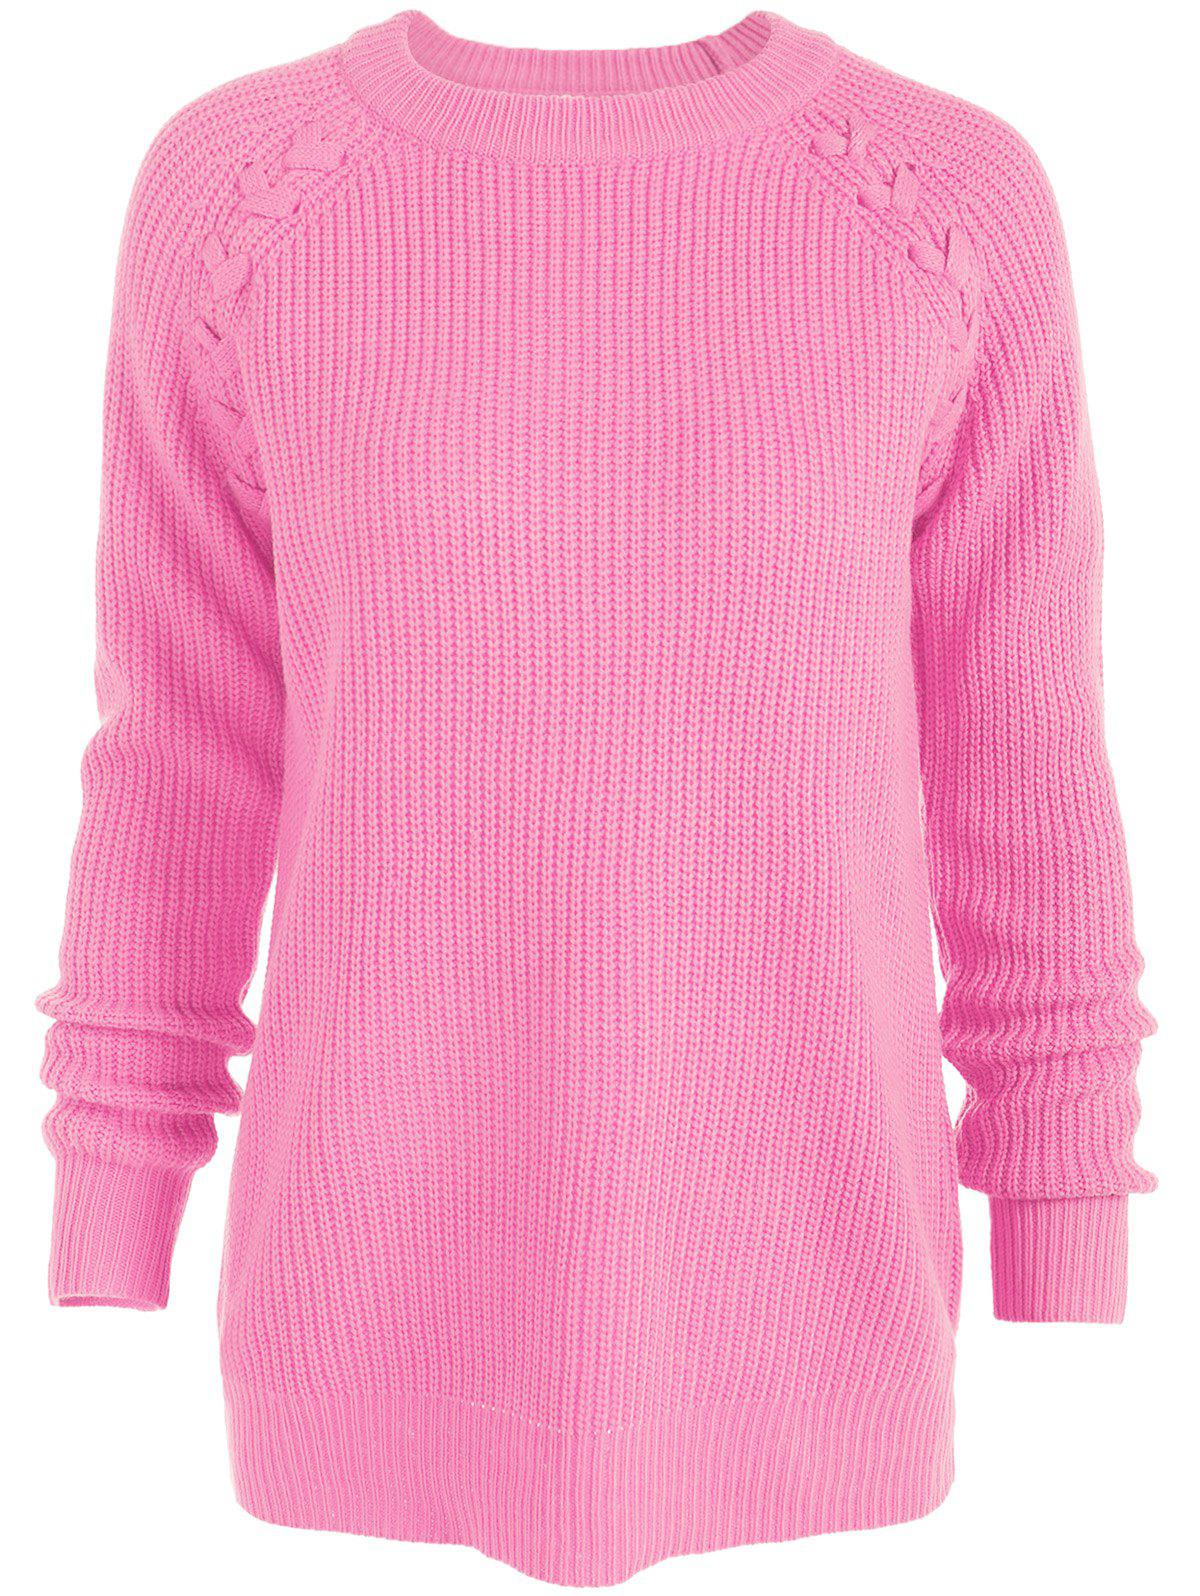 Raglan Sleeve Loose SweaterWOMEN<br><br>Size: 4XL; Color: LIGHT PINK; Type: Pullovers; Material: Acrylic,Polyester; Sleeve Length: Full; Collar: Round Neck; Style: Fashion; Season: Fall,Winter; Pattern Type: Solid; Weight: 0.320kg; Package Contents: 1 x Sweater;